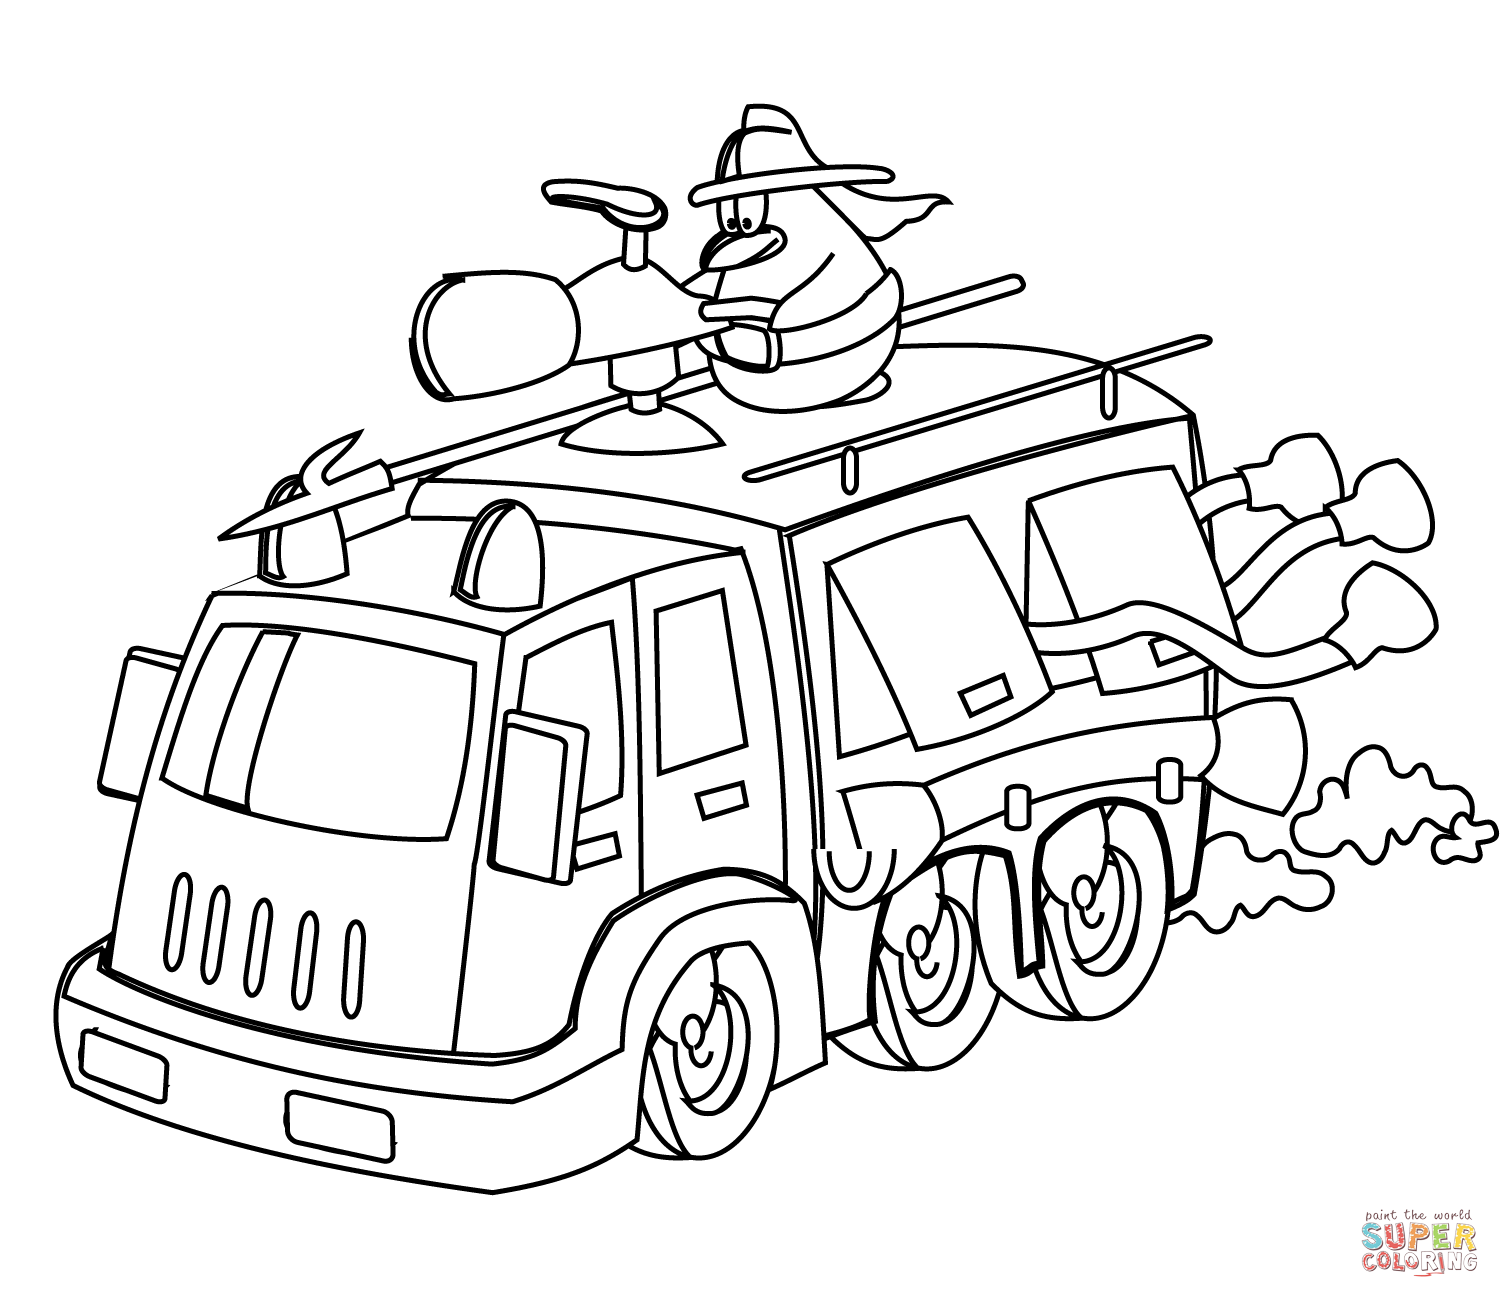 free firetruck coloring pages - photo#10